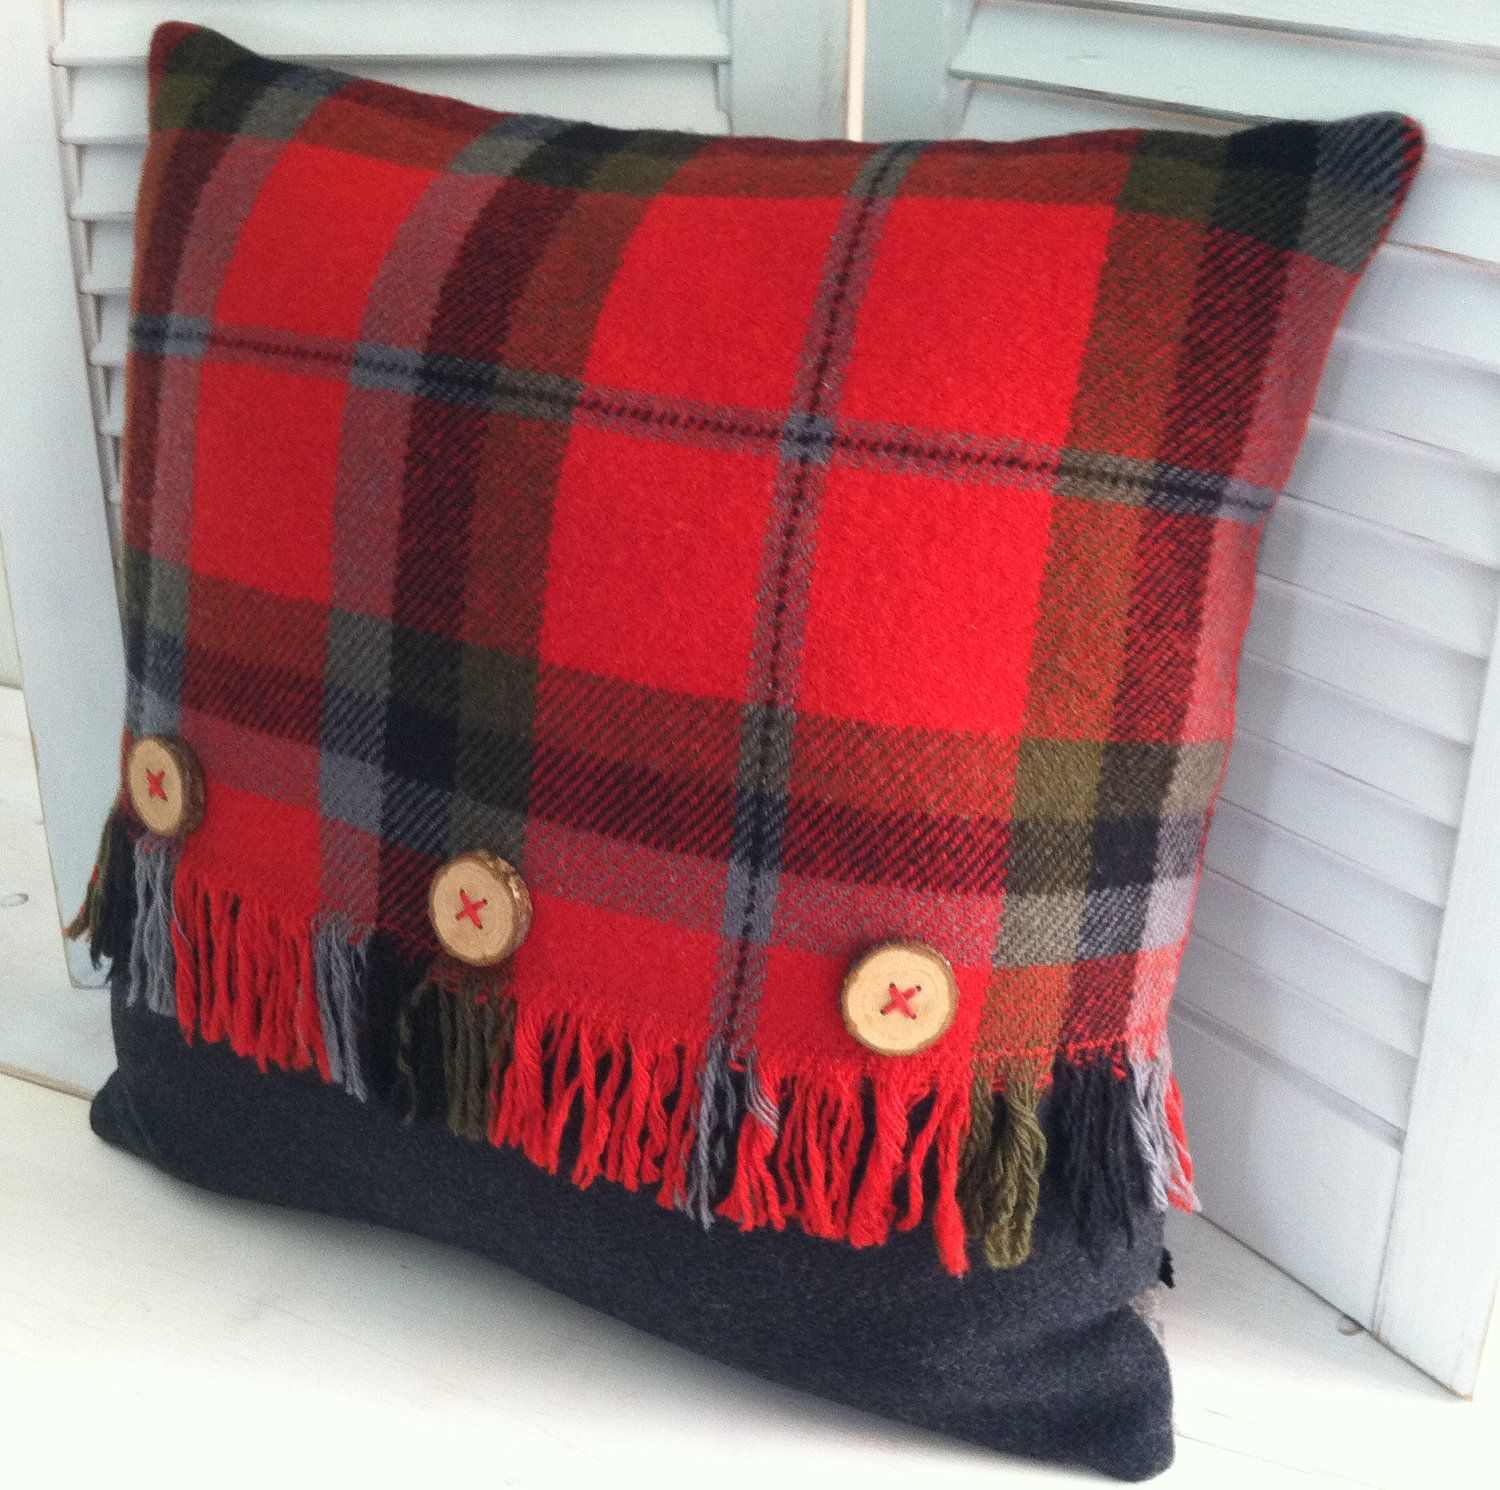 Vintage wool blanket red plaid pillow with wooden buttons